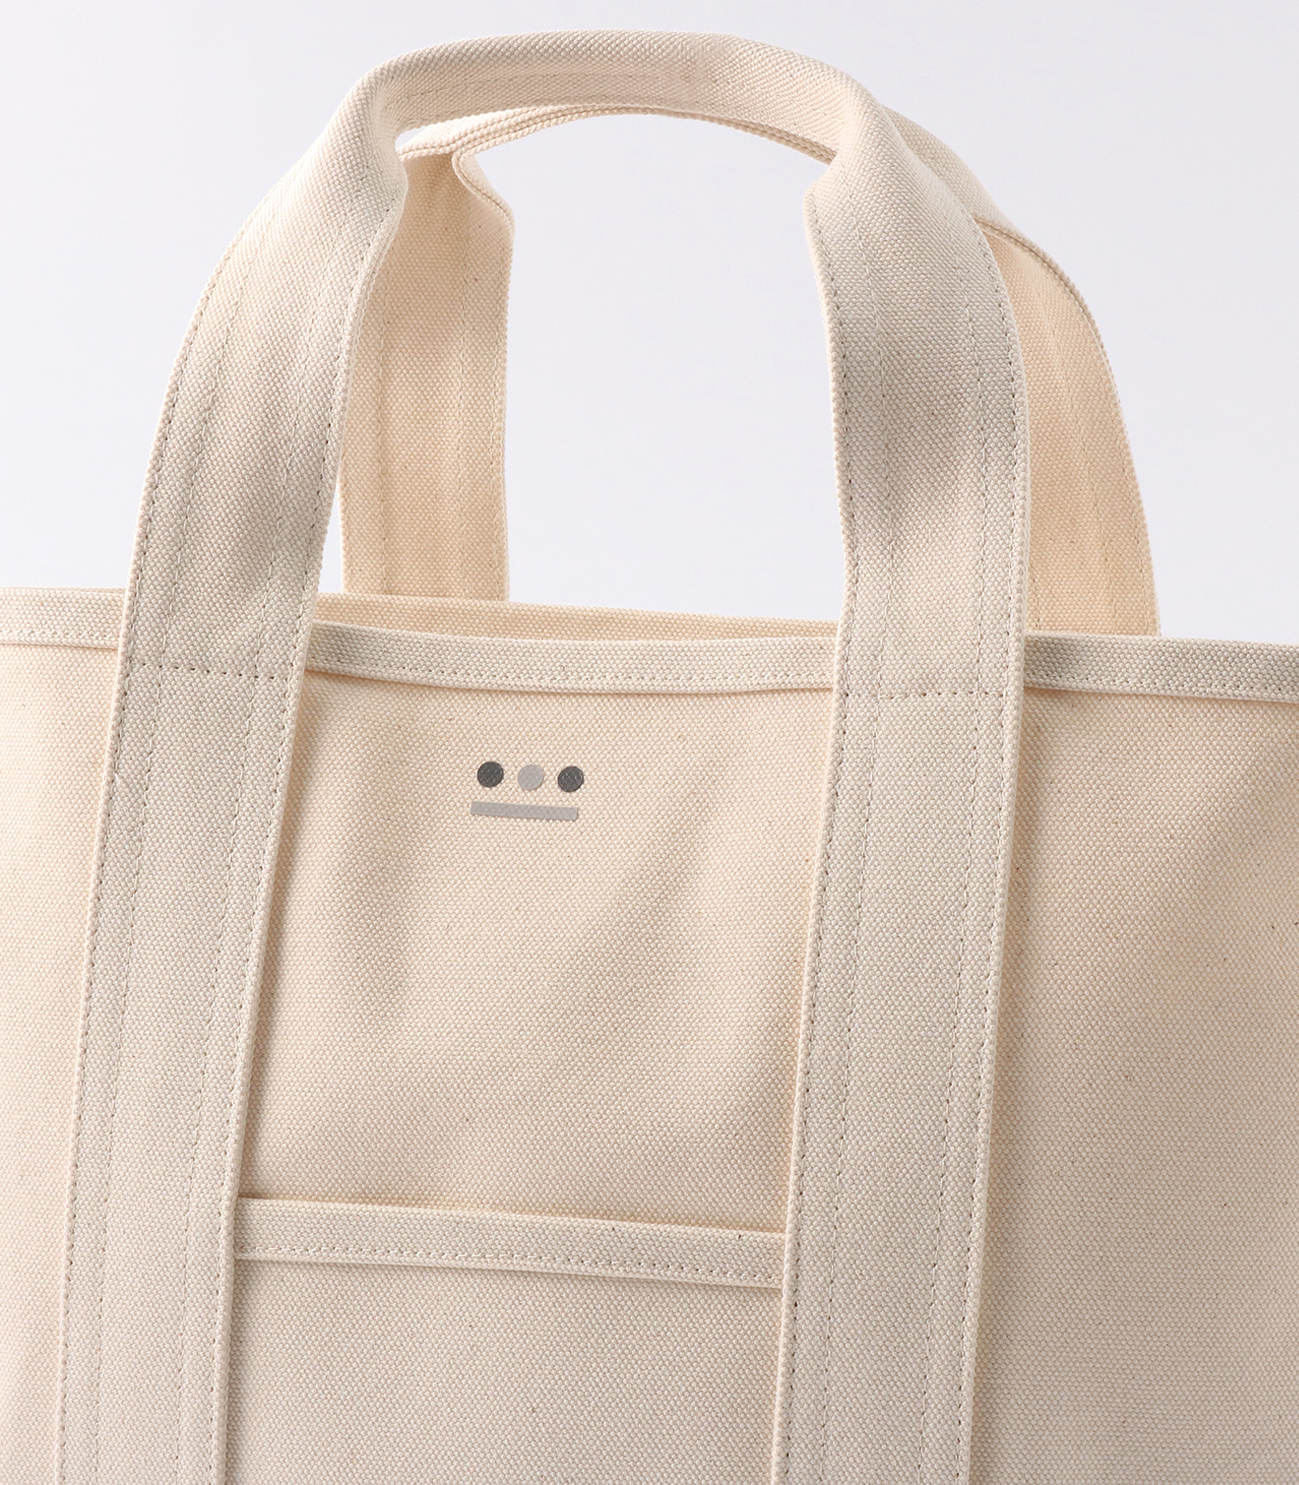 middle tote bag 詳細画像 white 4